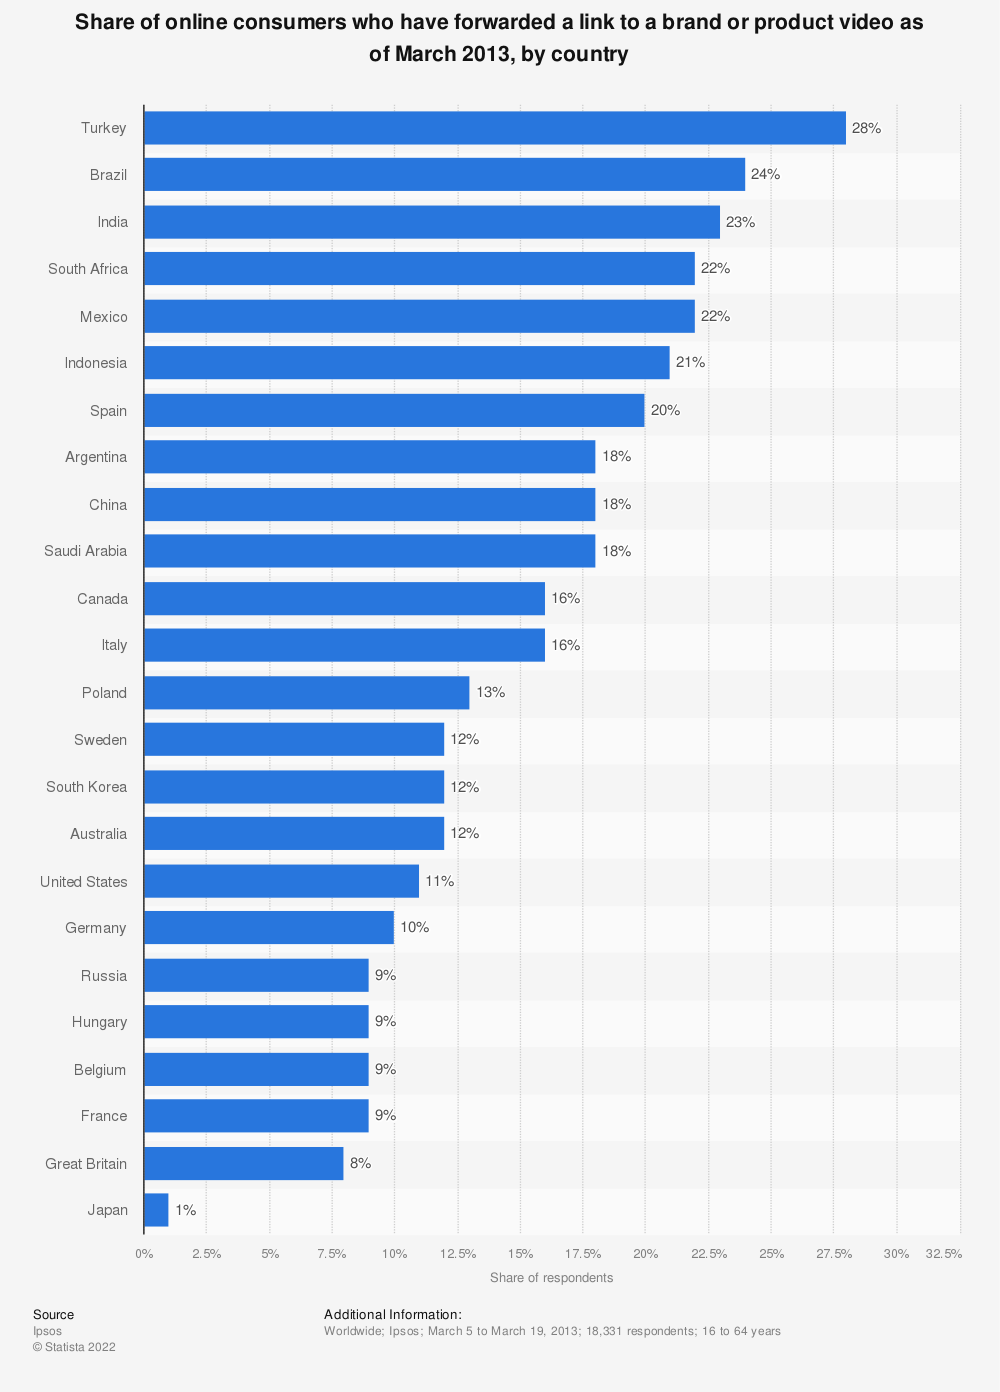 Statistic: Share of online consumers who have forwarded a link to a brand or product video as of March 2013, by country | Statista